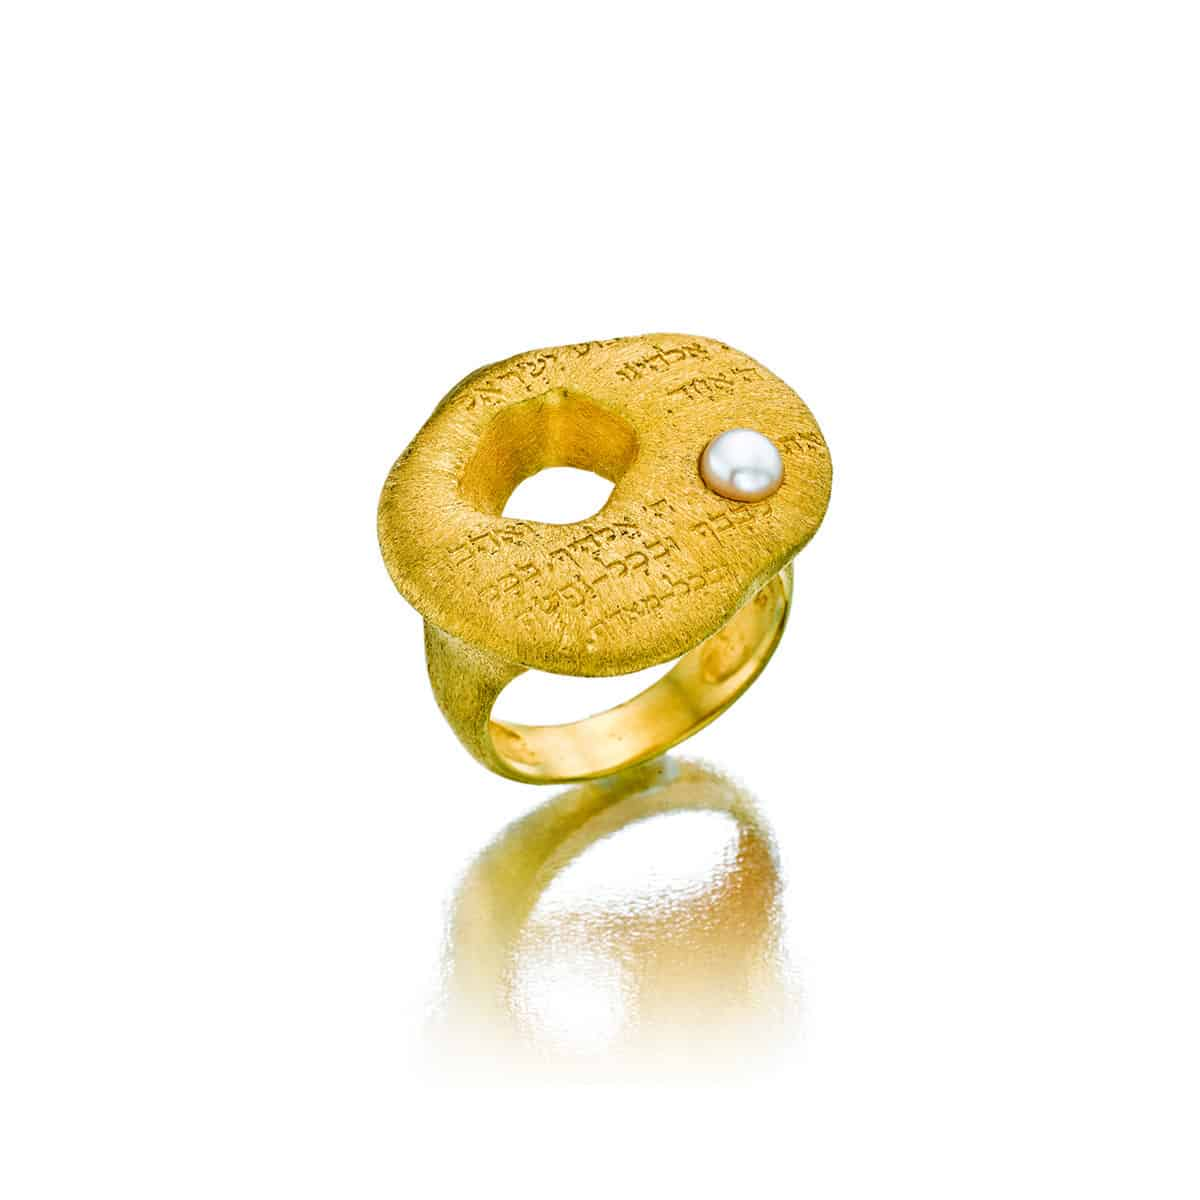 SHEMA YISRAEL gold plated Ring with natural pearls